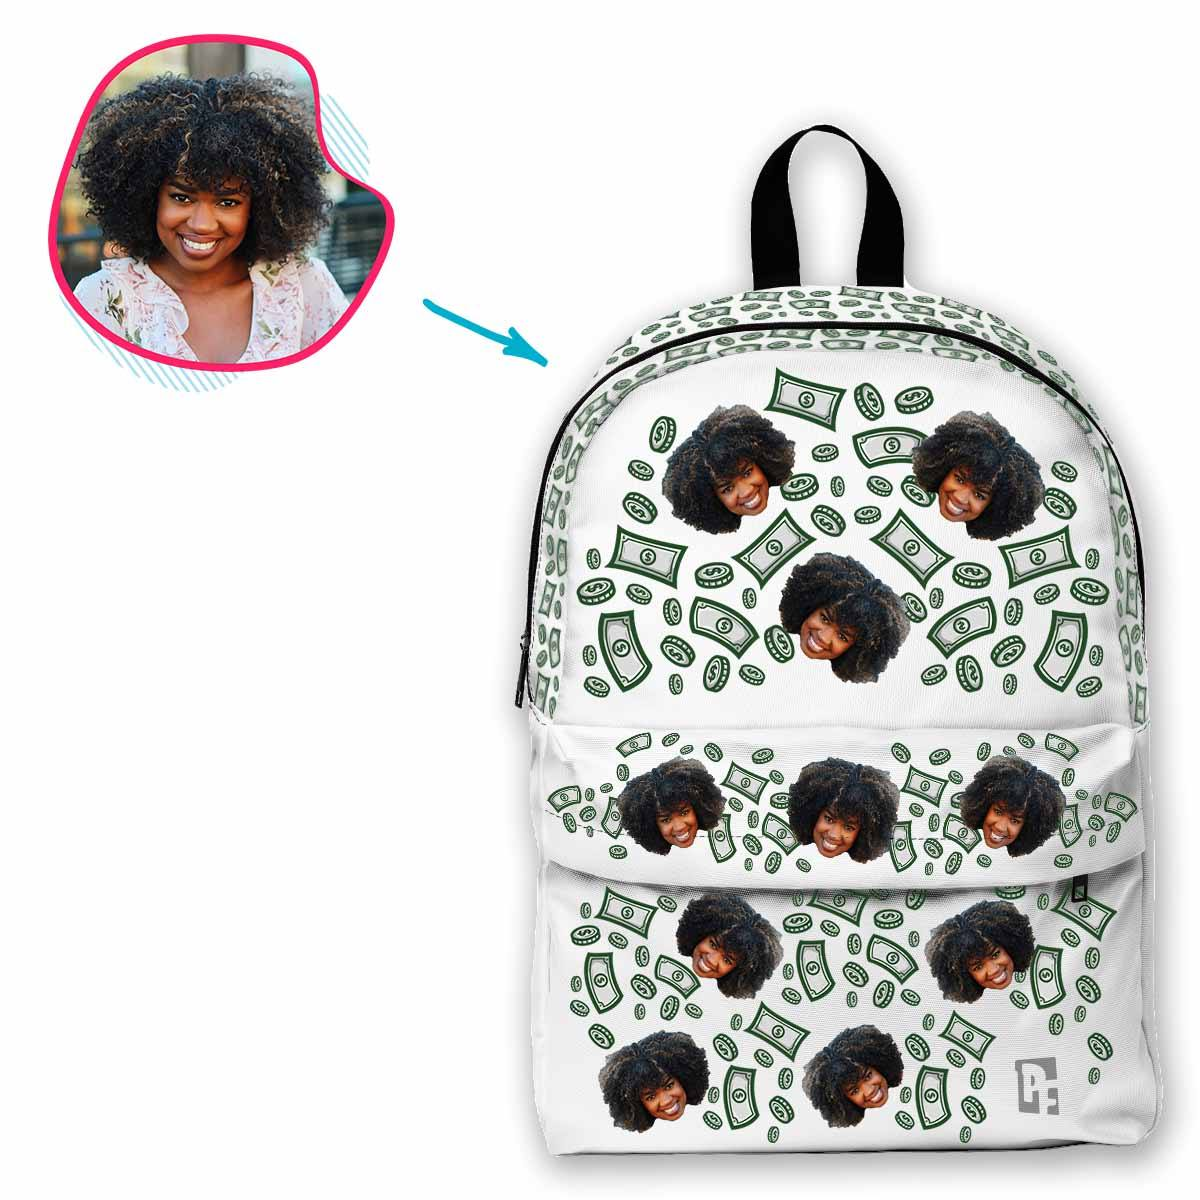 white Money classic backpack personalized with photo of face printed on it